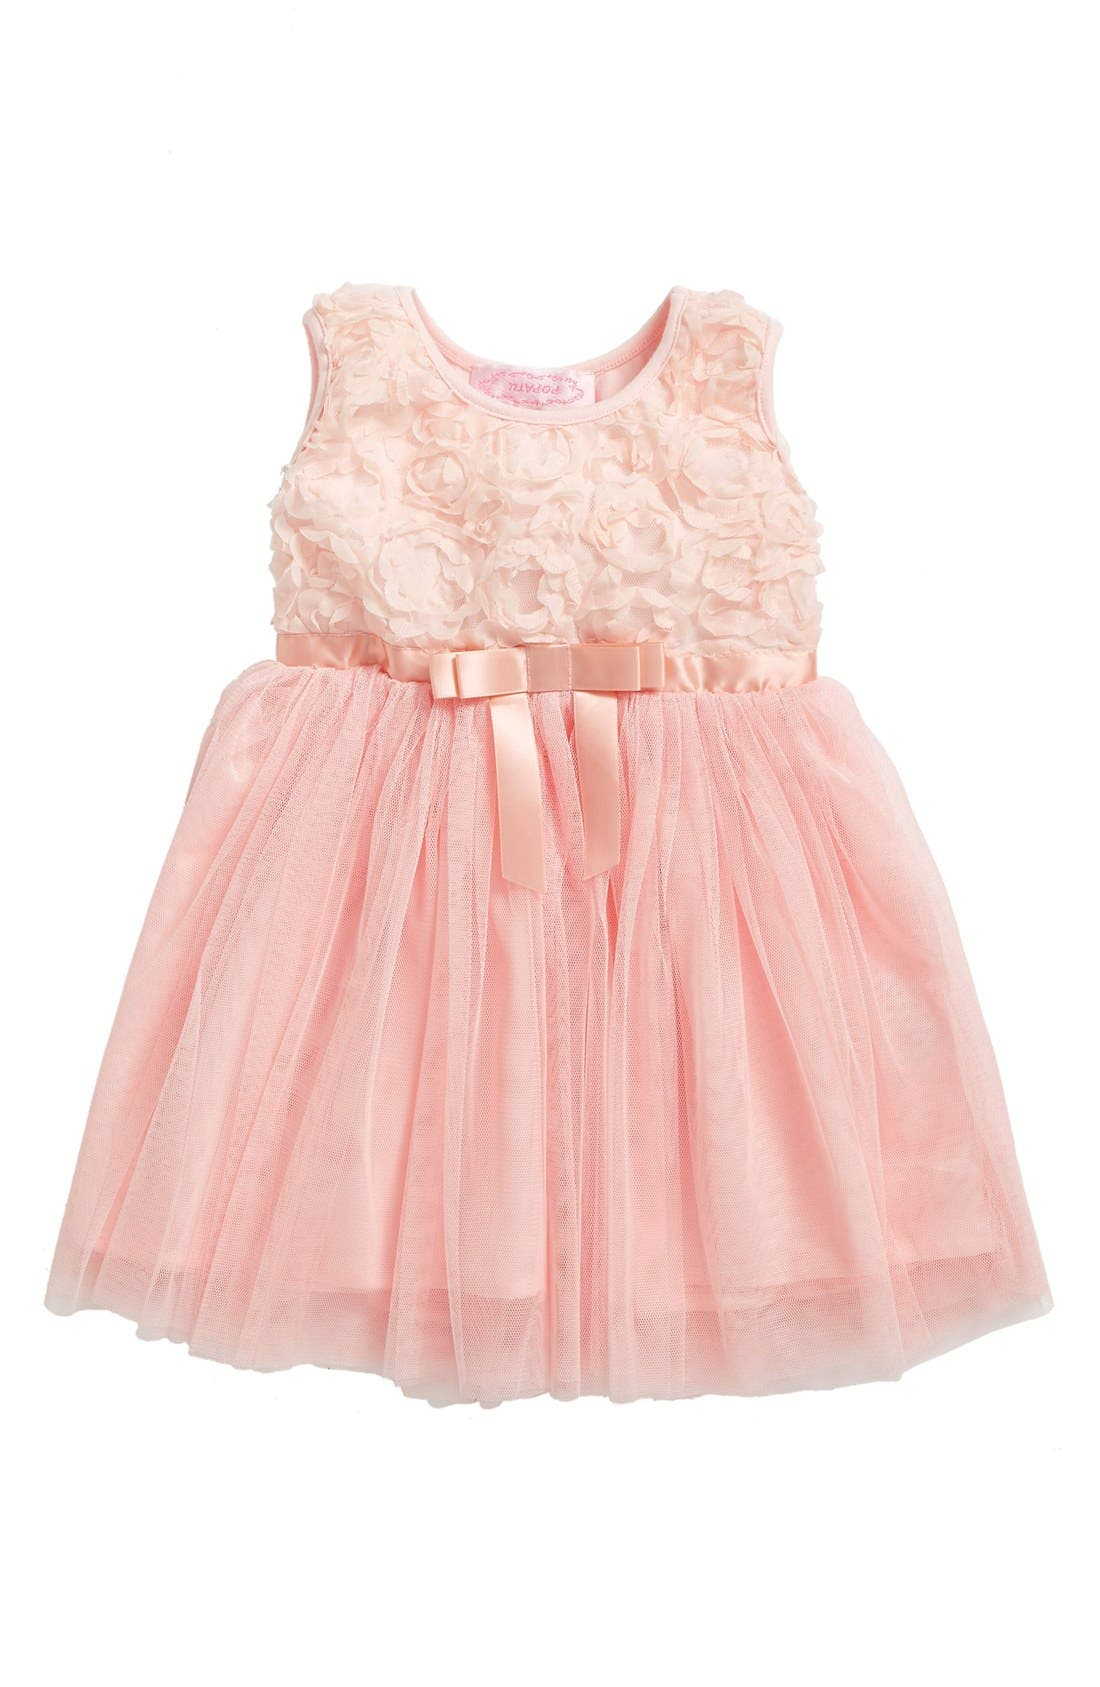 Alternate Image 1 Selected - Popatu Empire Waist Rosette Dress (Baby Girls)